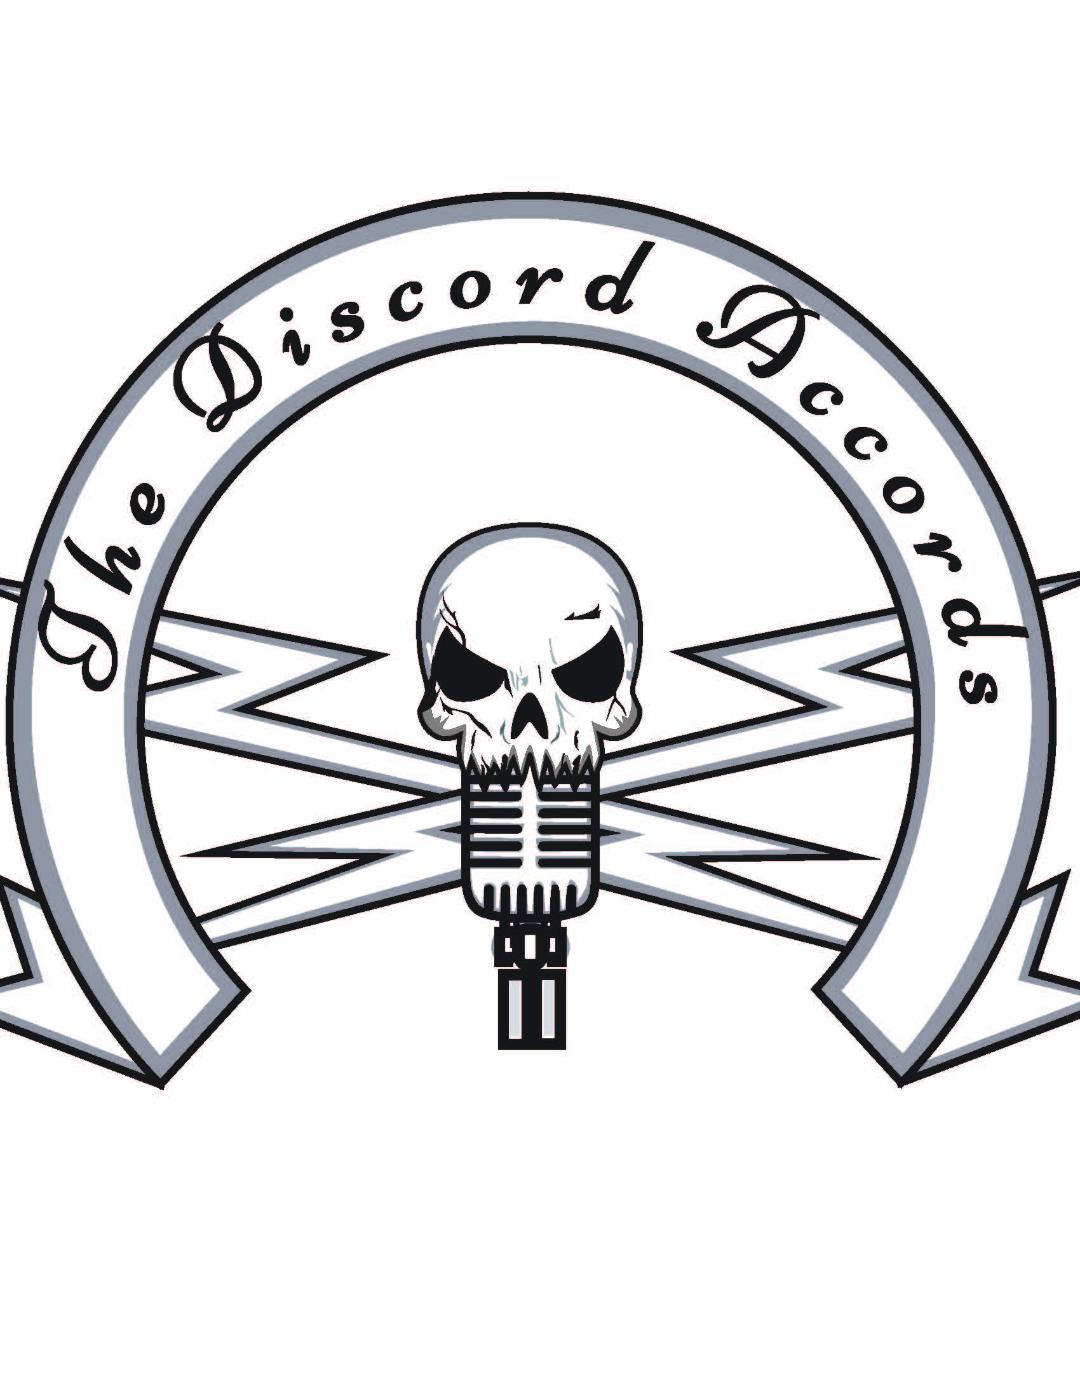 The Discord Accords